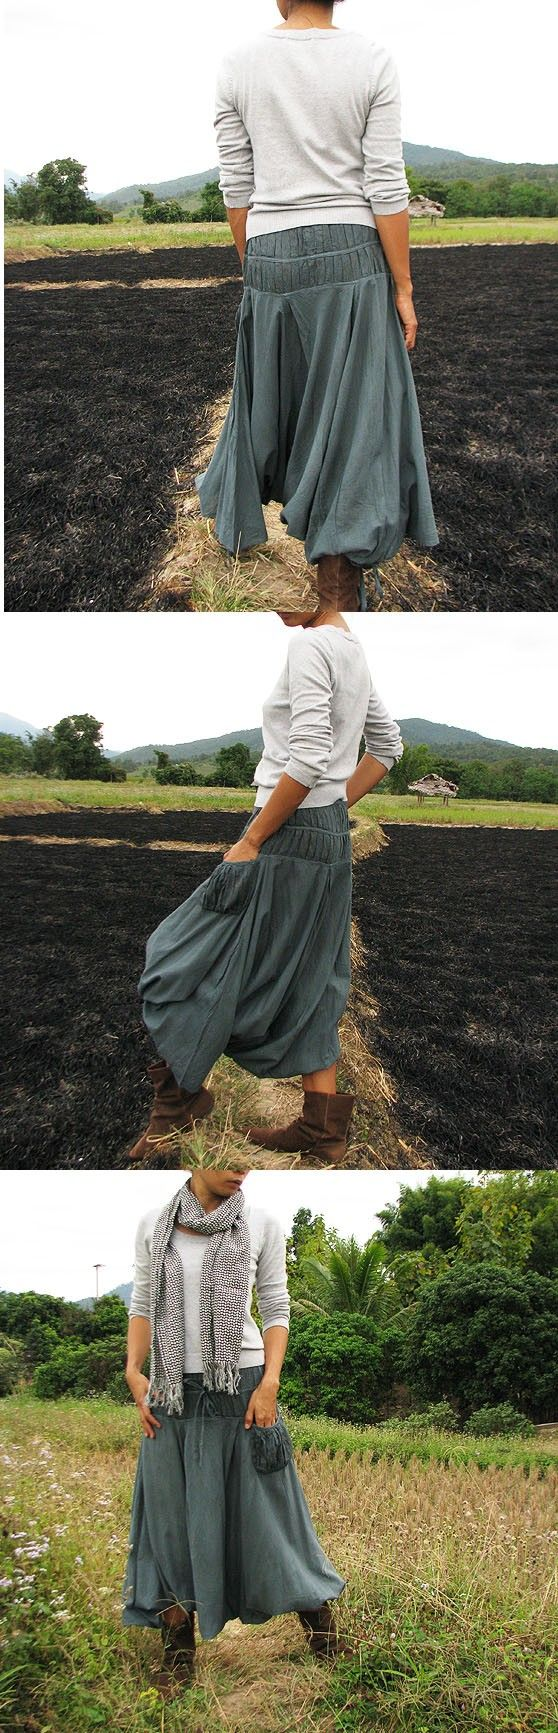 I need some of these for the gardening projects!  Looks like a skirt but everything is safely covered.